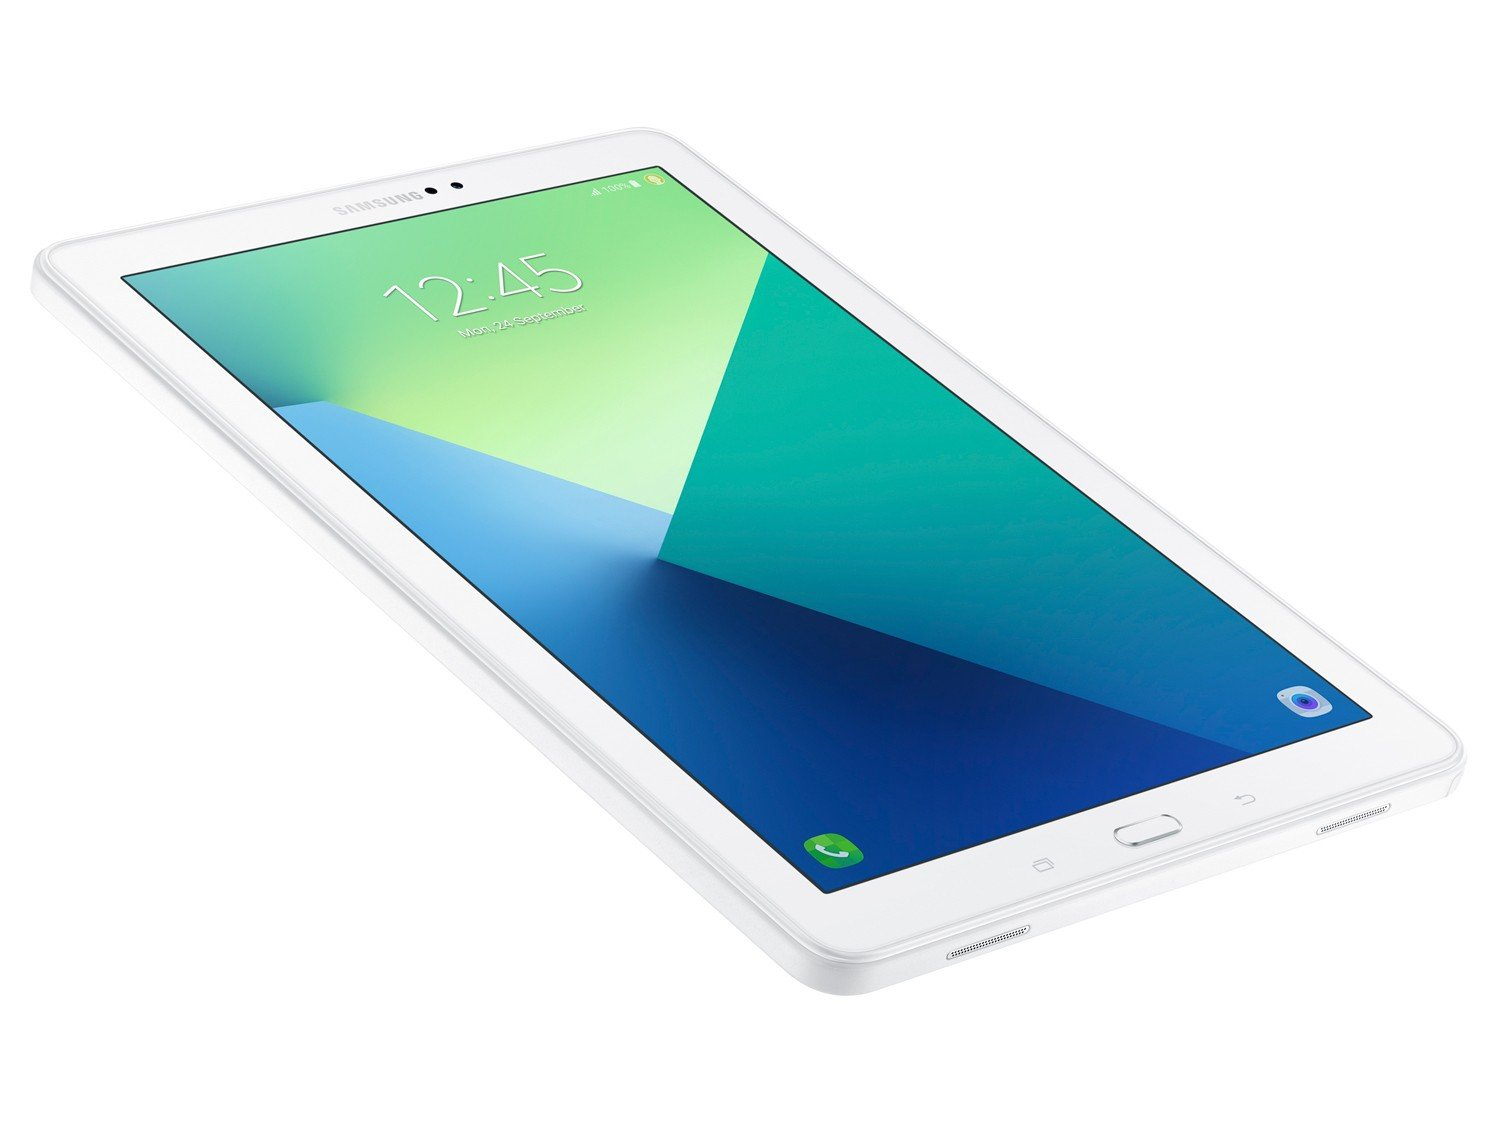 Foto 8 - Tablet Samsung Galaxy Tab A Note P585 16GB 10,1 - 4G Wi-Fi Android 7 Proc. Octa Core Câm 8MP